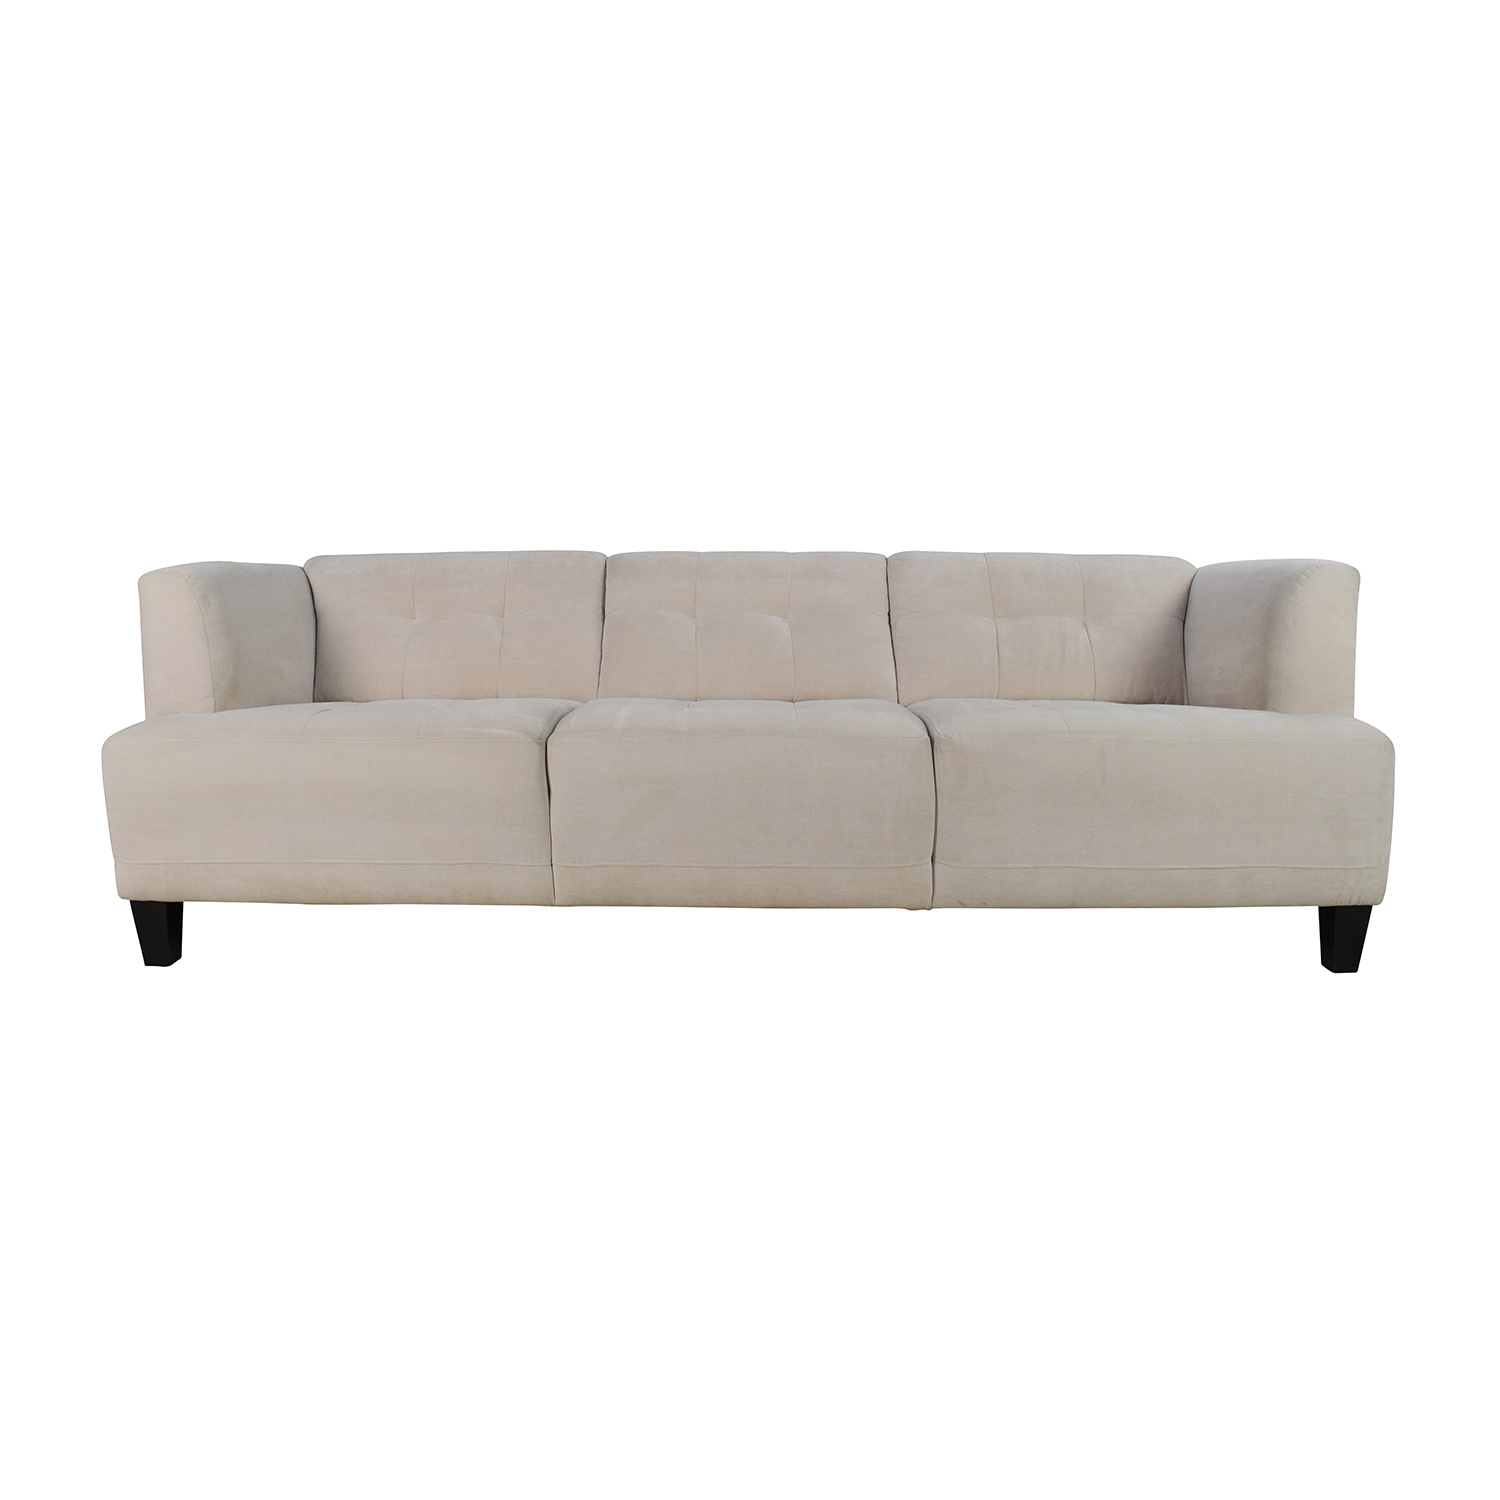 Macys Macys Alessia Pearl Button Tufted Sofa